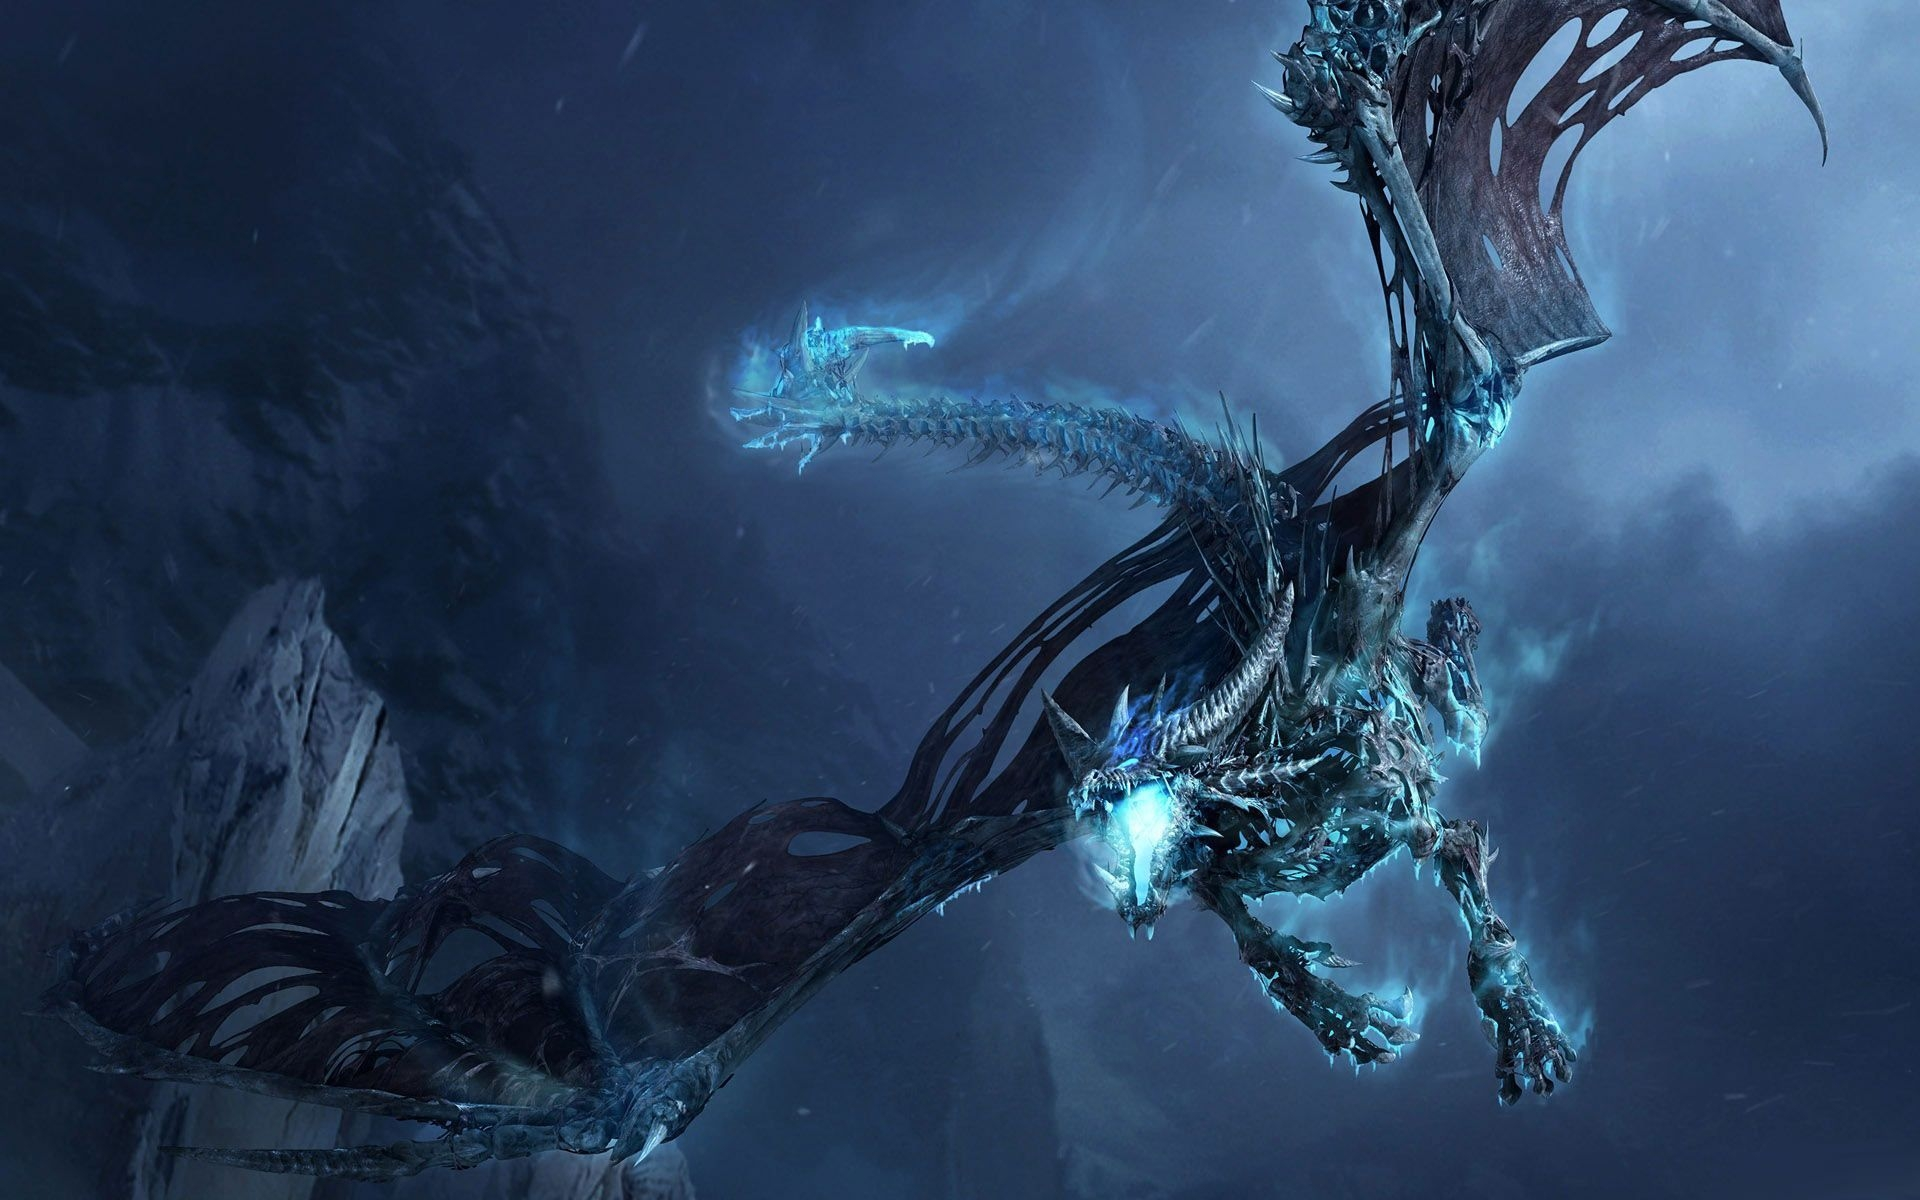 cool-dragon-cool-dragon-HD-Download-Download-cool-dragon-from-t-wallpaper-wp3404154